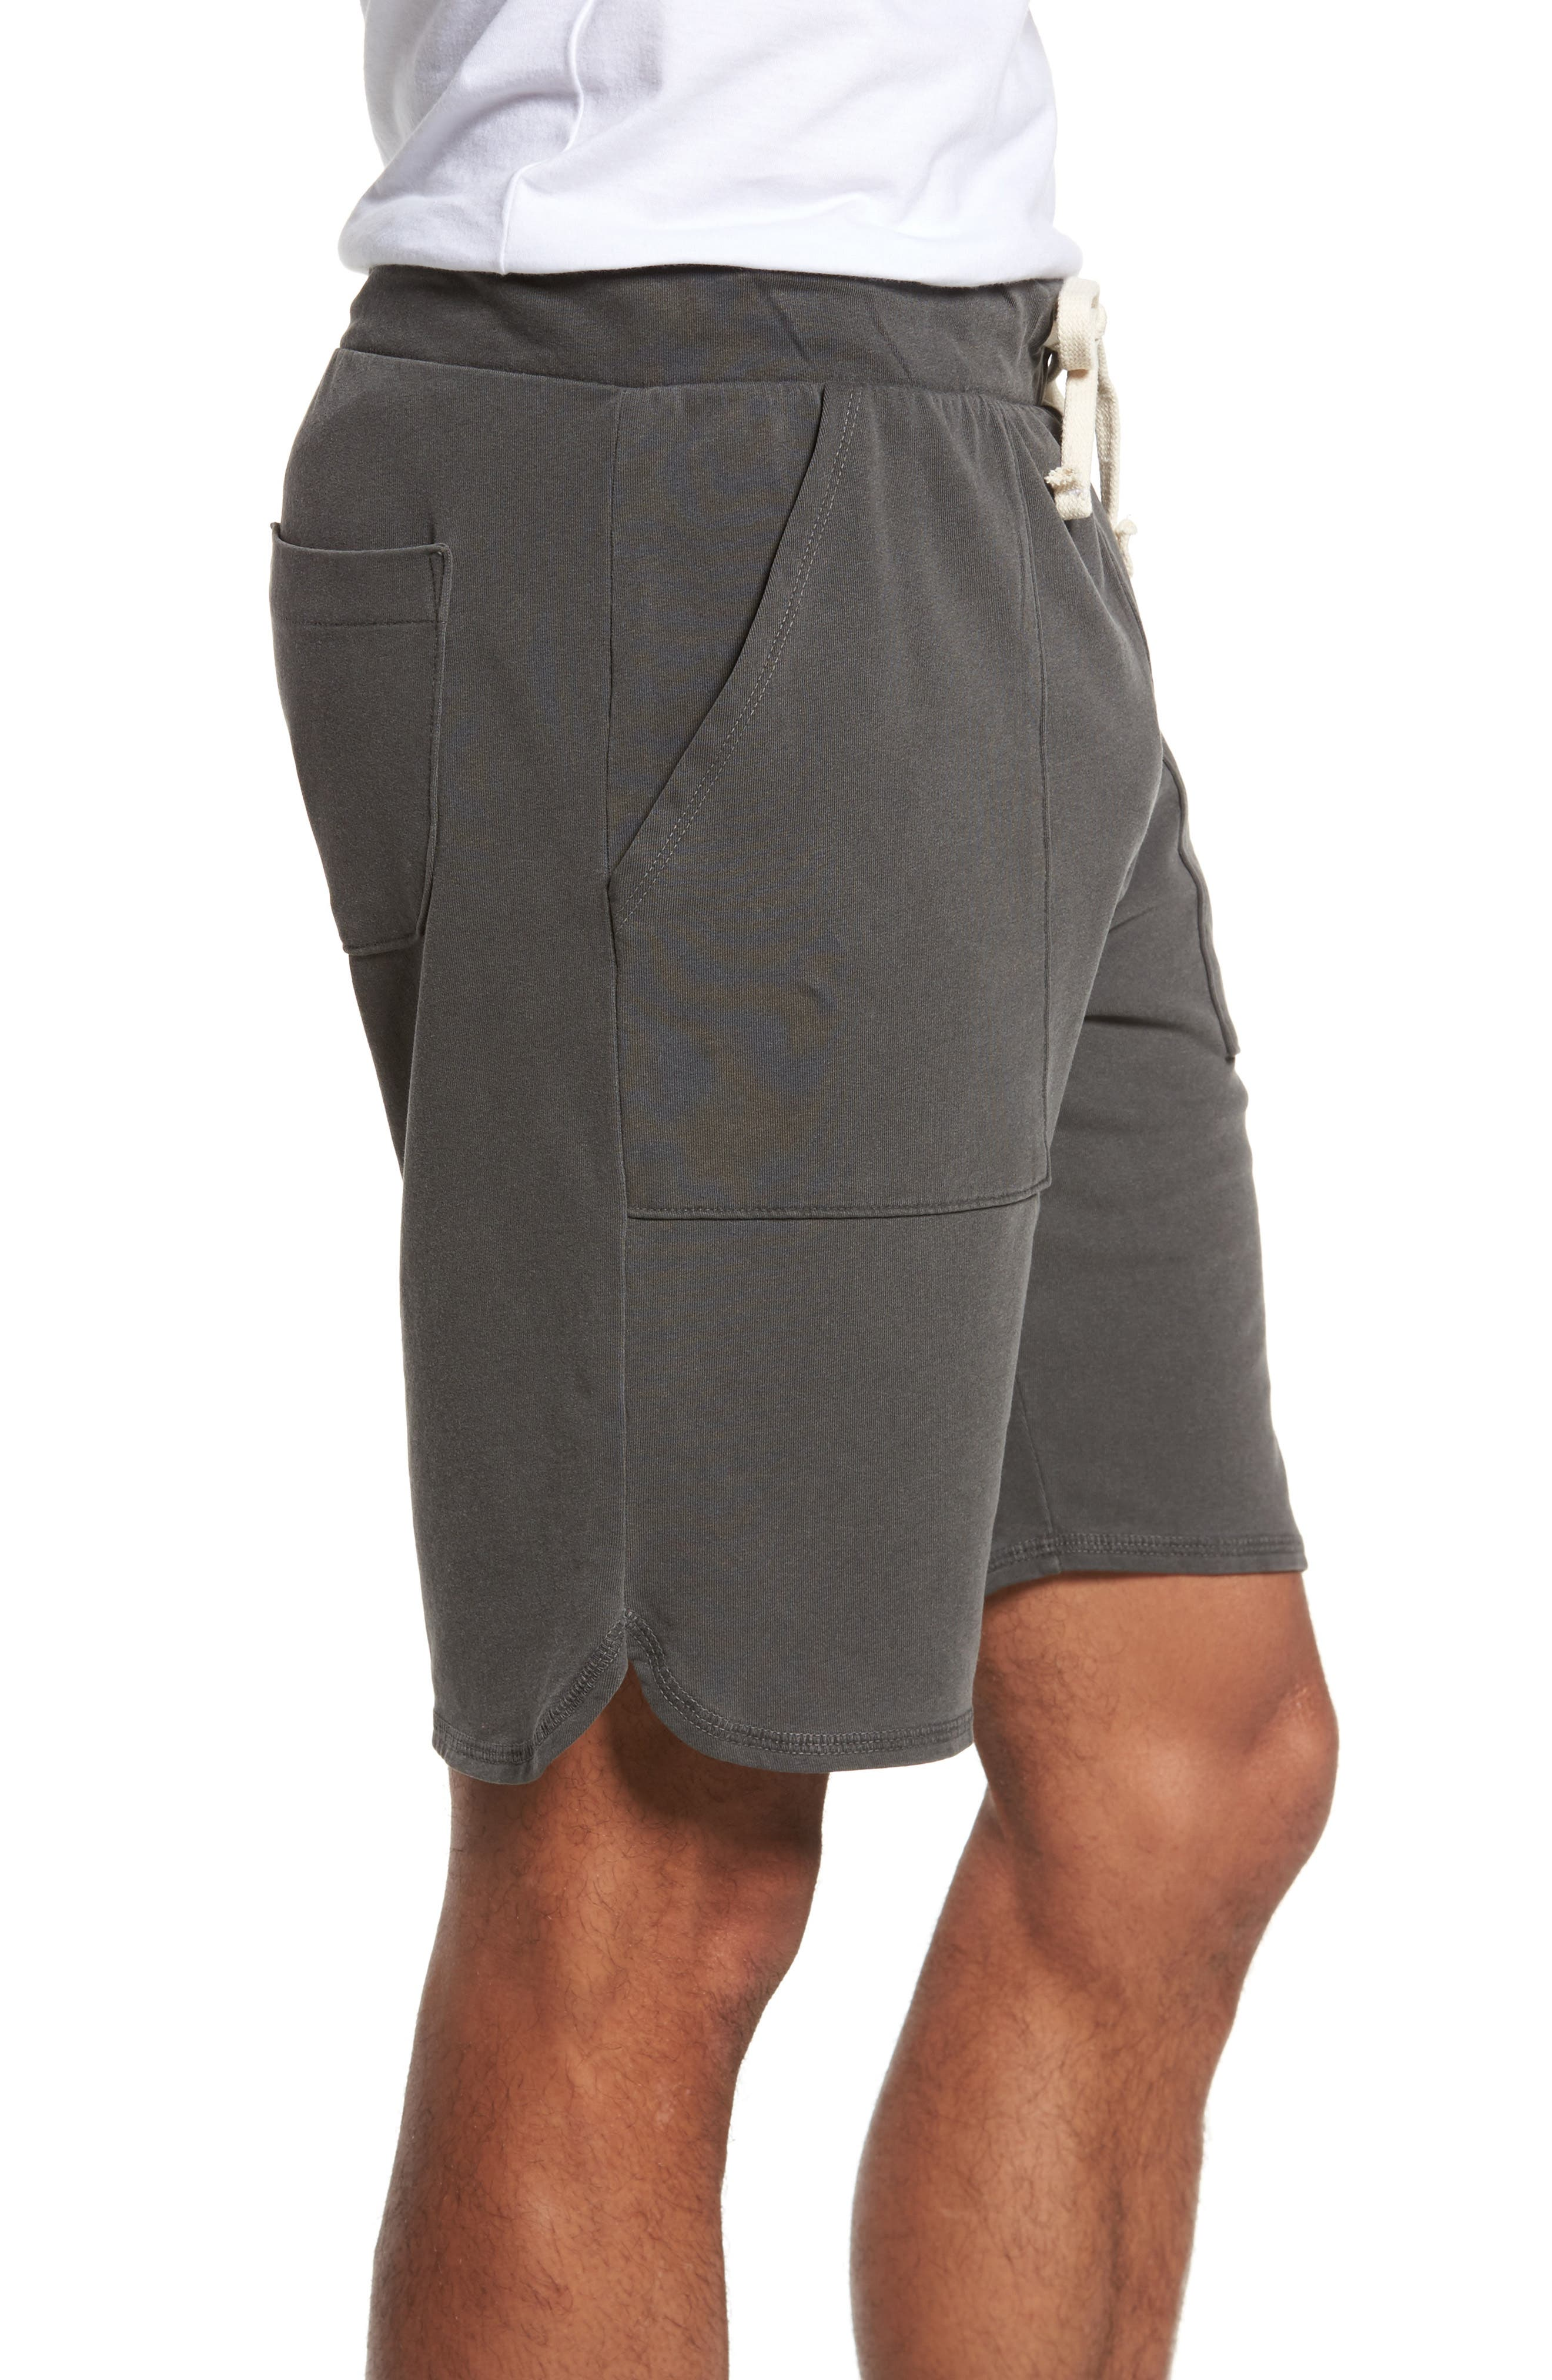 Terrycloth Scallop Shorts,                             Alternate thumbnail 3, color,                             009